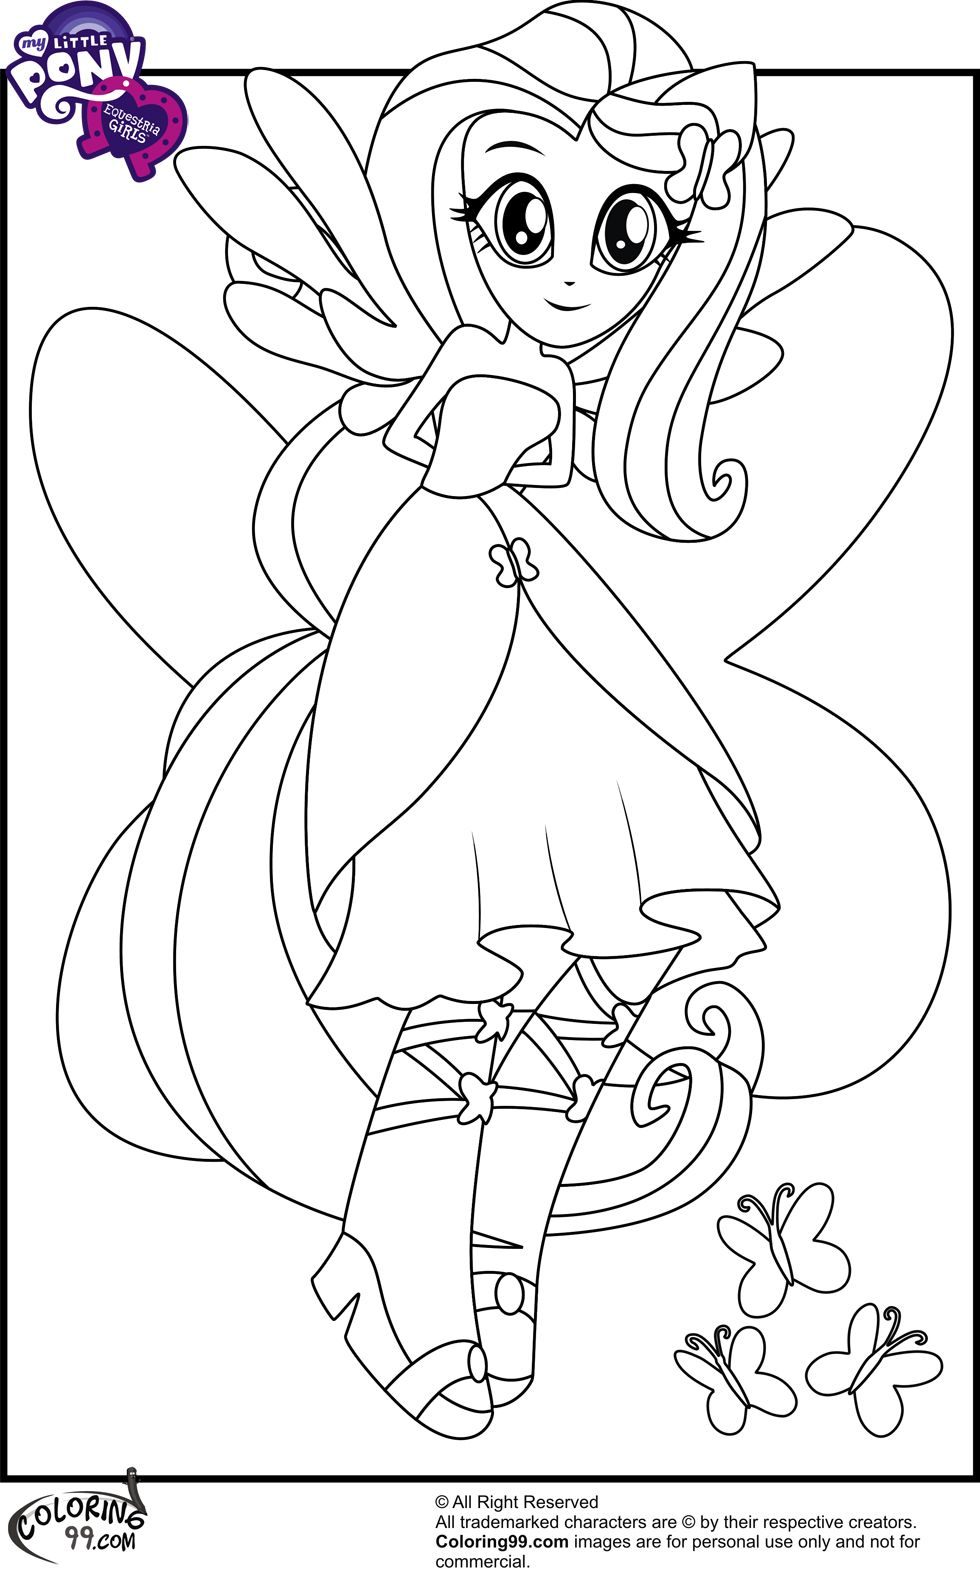 Vintage my little pony coloring pages - Coloring Pages On Pinterest Equestria Girls My Little Pony My Little Pony